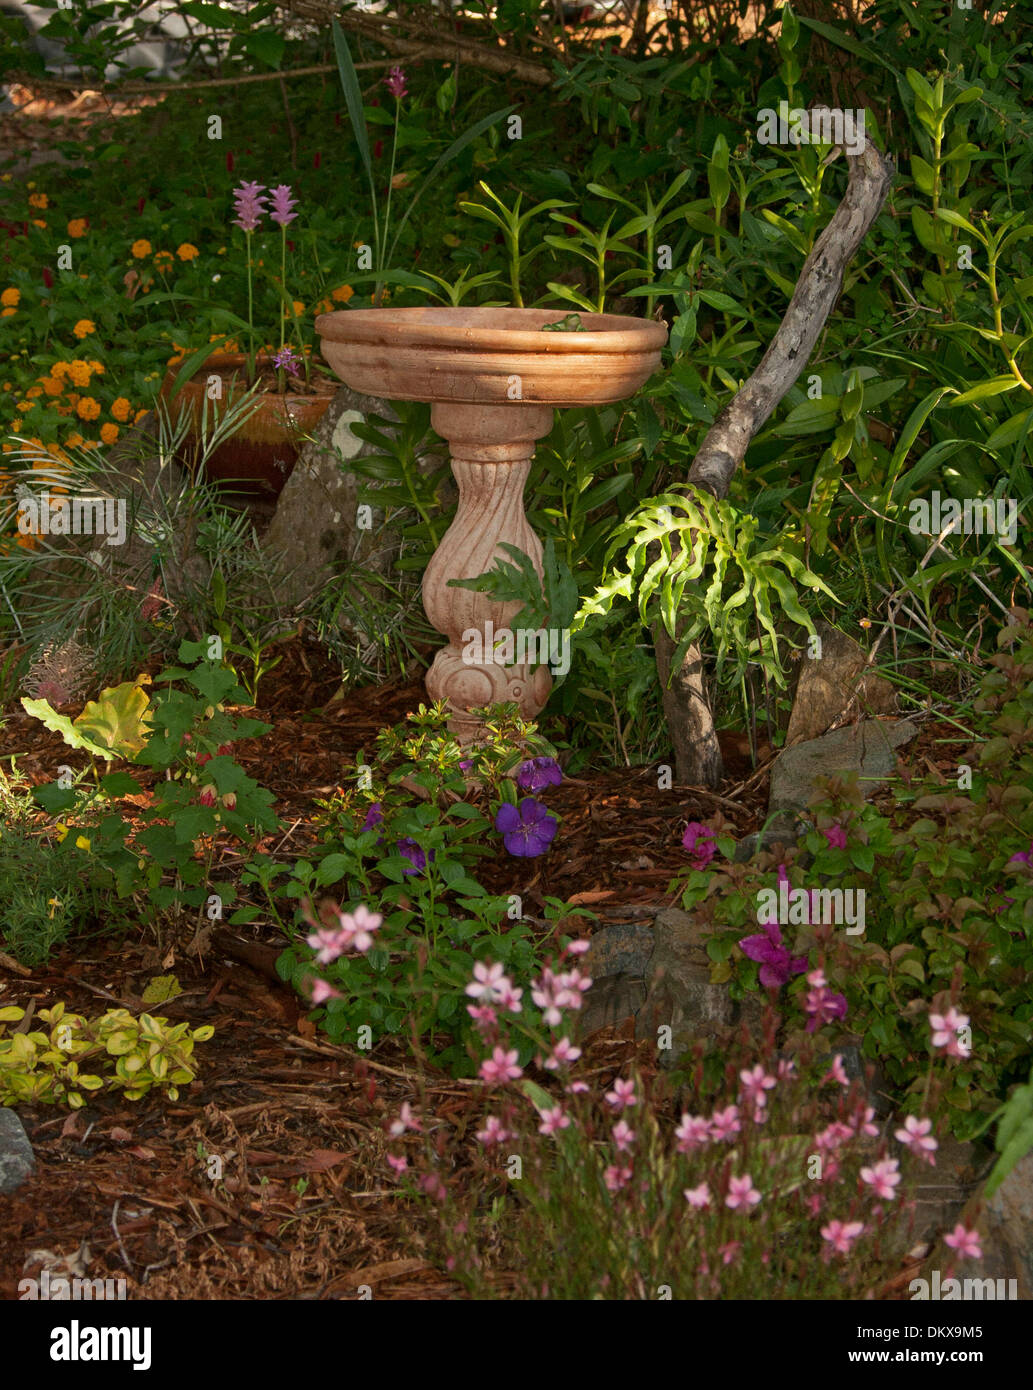 Ornate terracotta bird bath among flowers and colourful perennial ornate terracotta bird bath among flowers and colourful perennial flowering plants and ferns in cottage garden in australia mightylinksfo